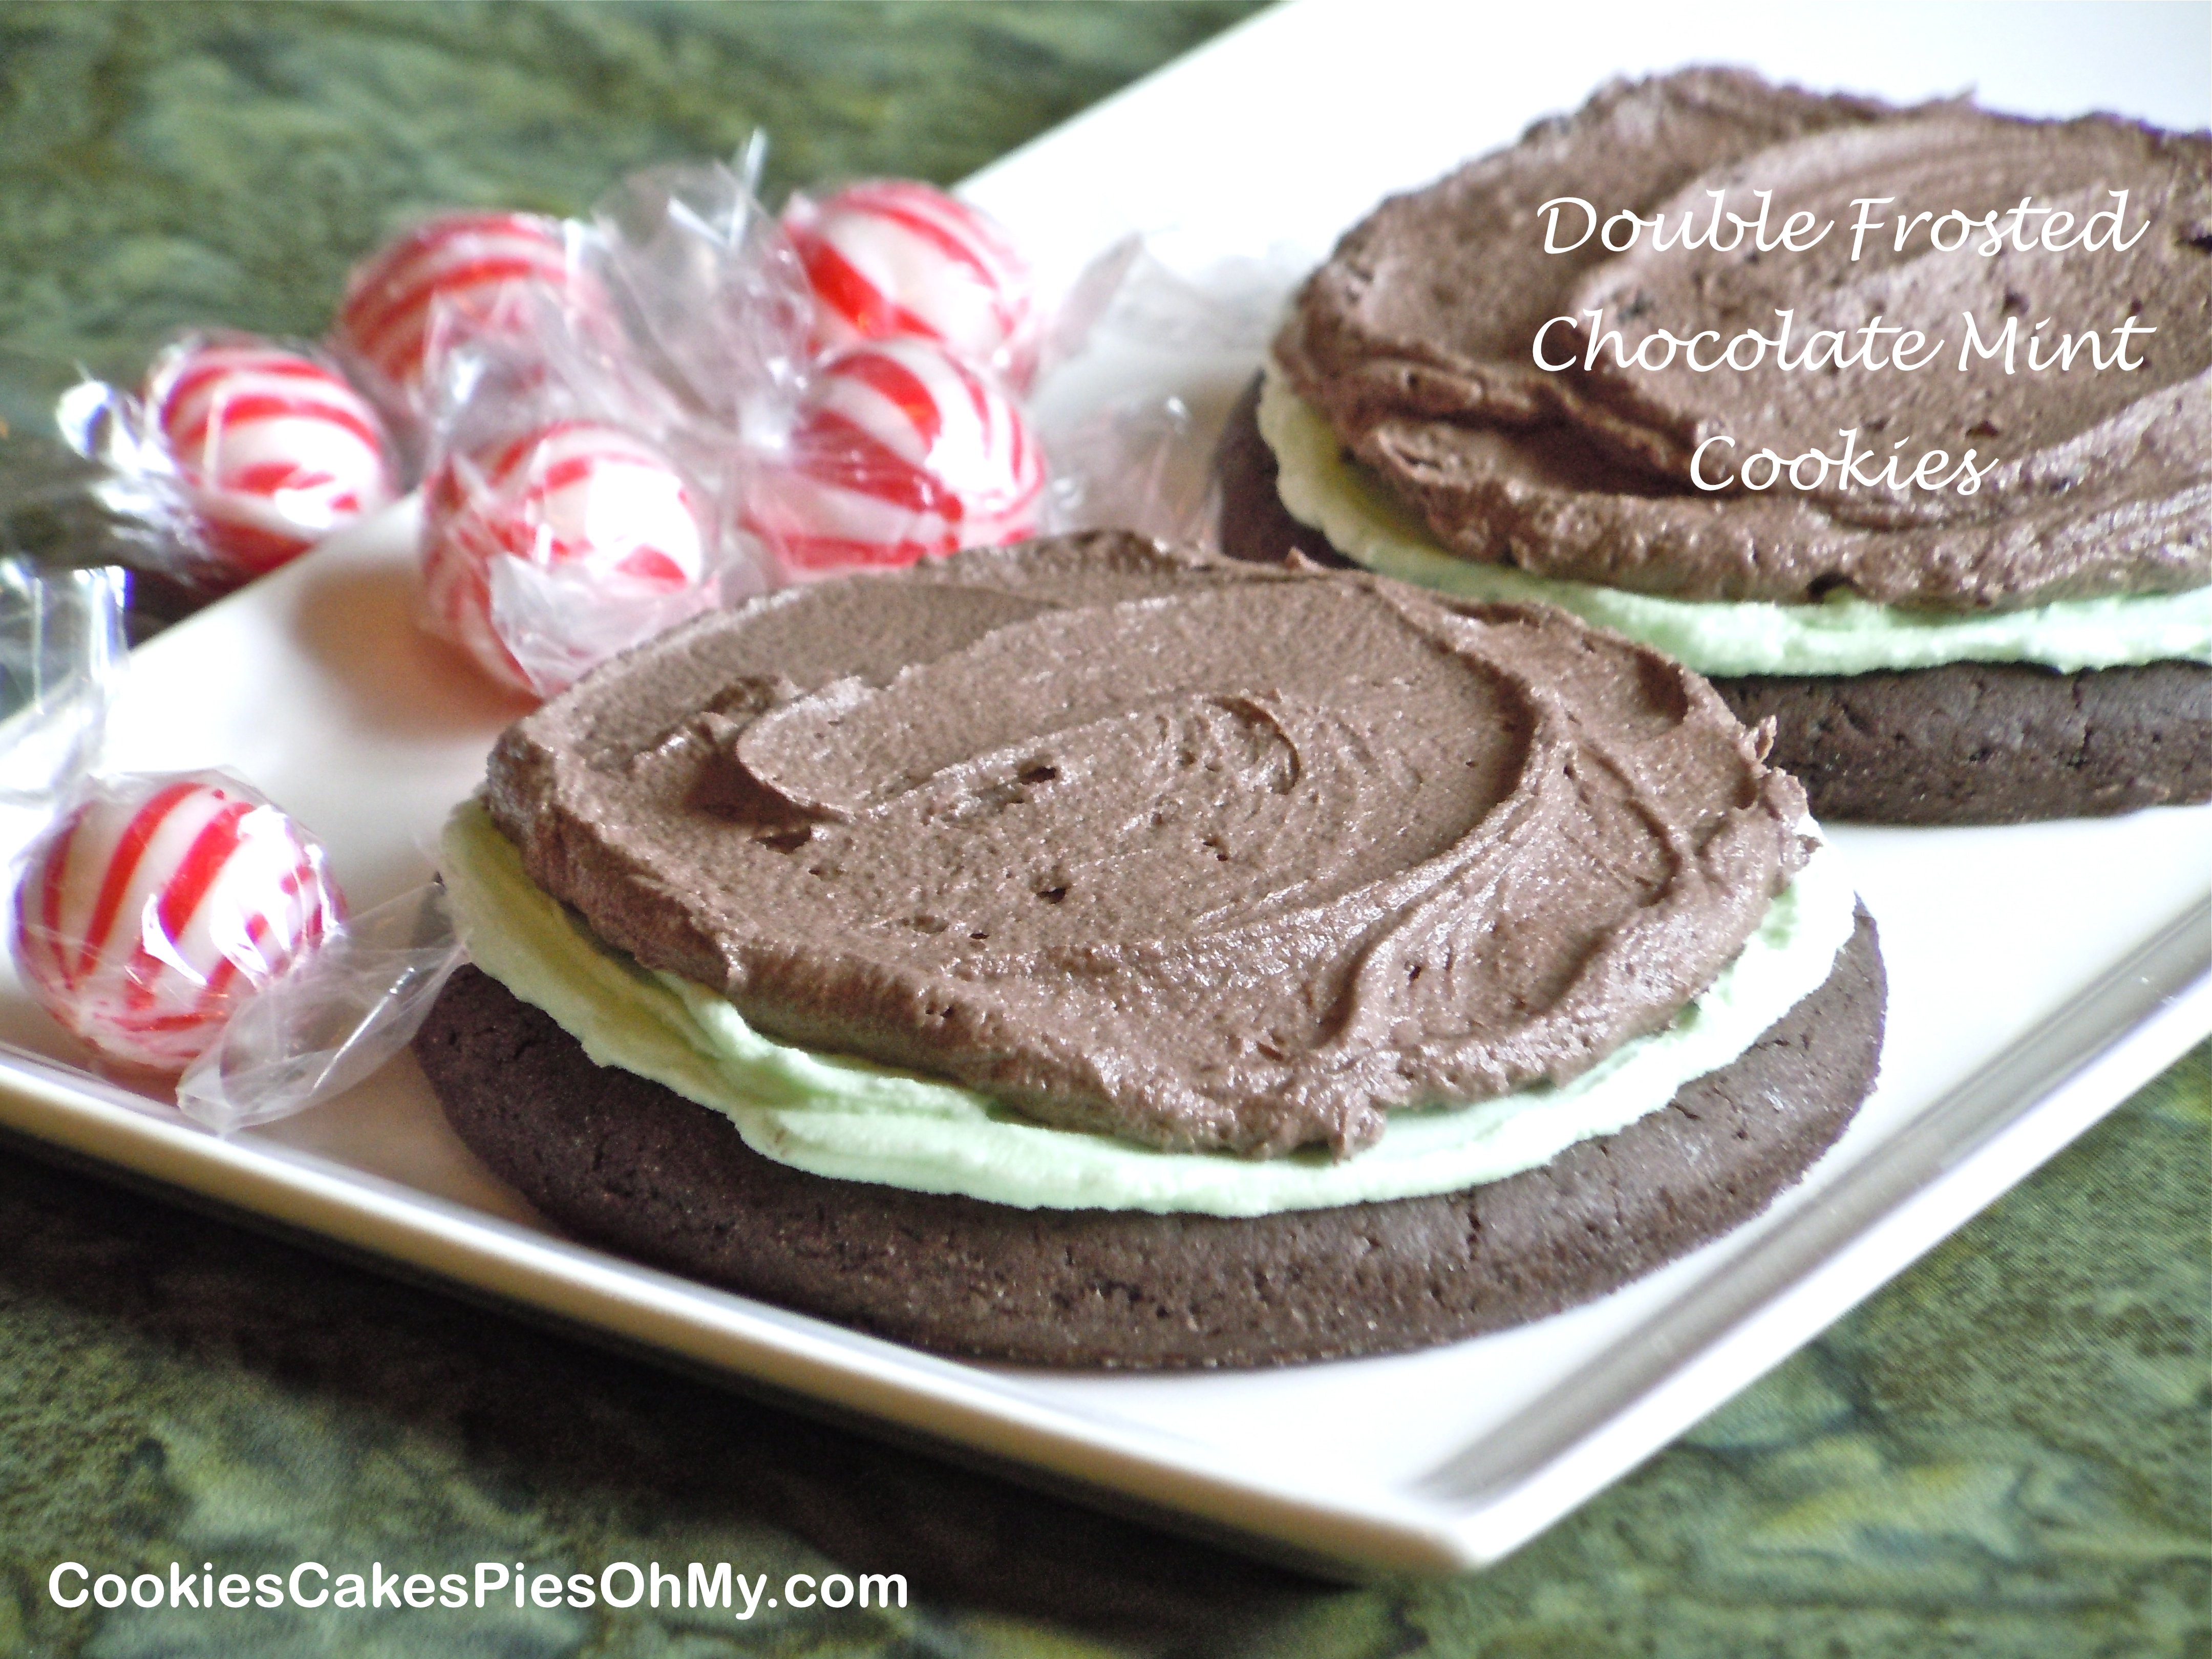 ... 13, 2012 at 4320 × 3240 in Double Frosted Chocolate Mint Cookies